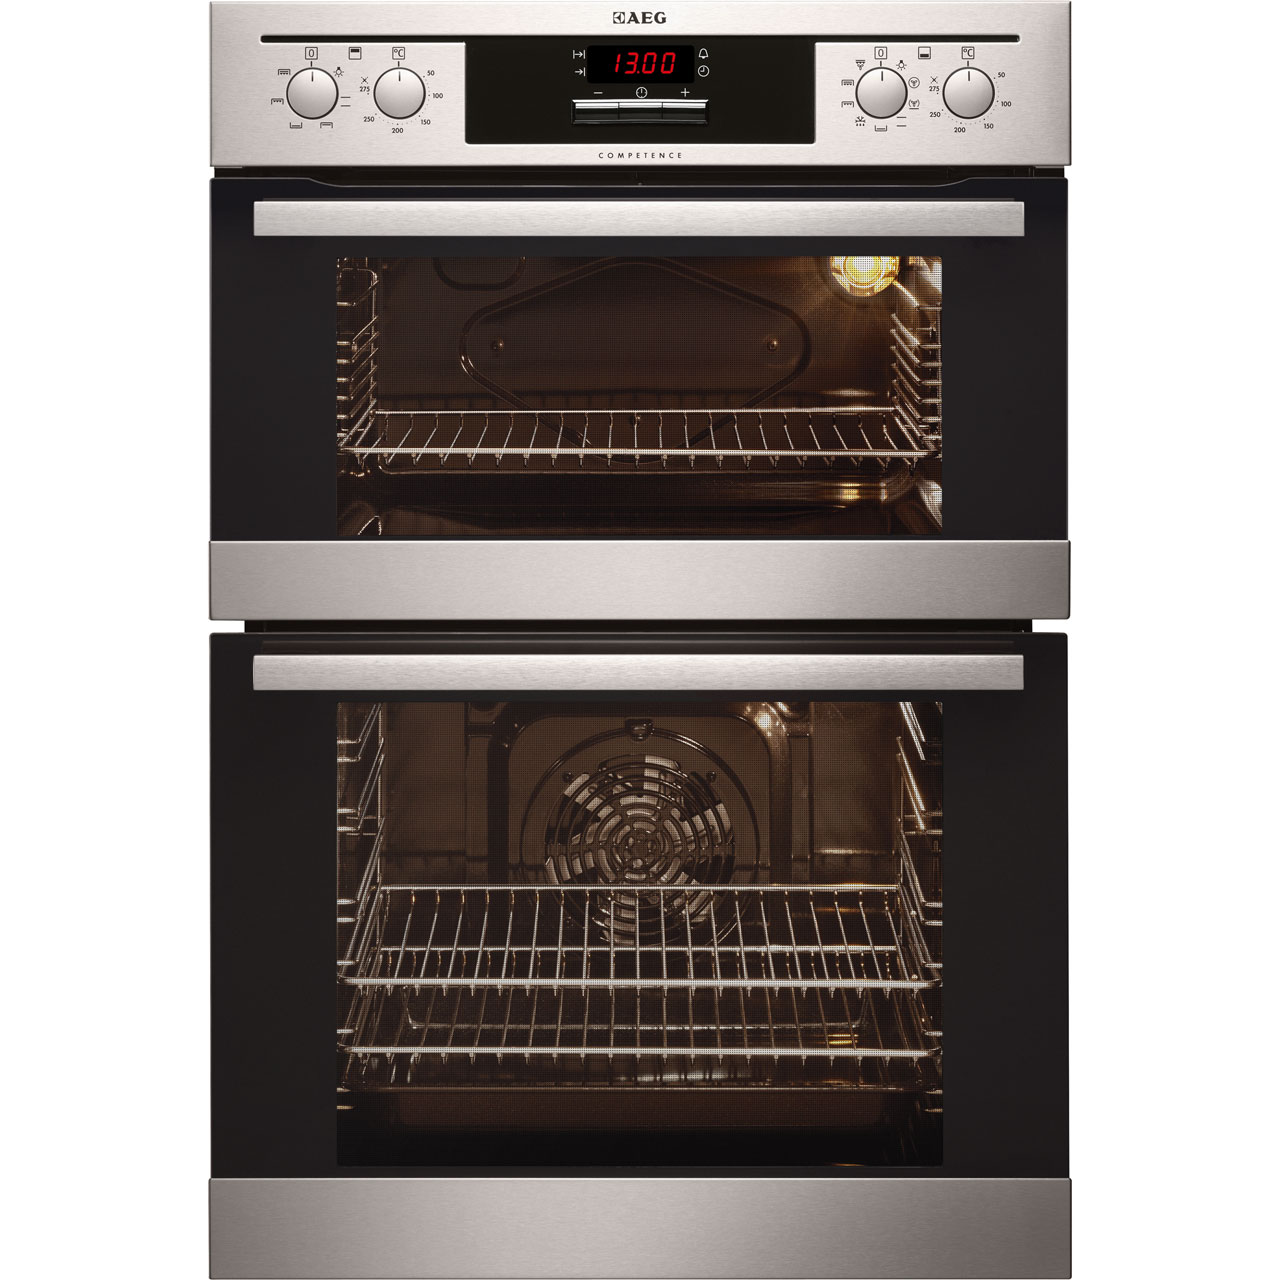 AEG Competence DE401301DM Integrated Double Oven in Stainless Steel